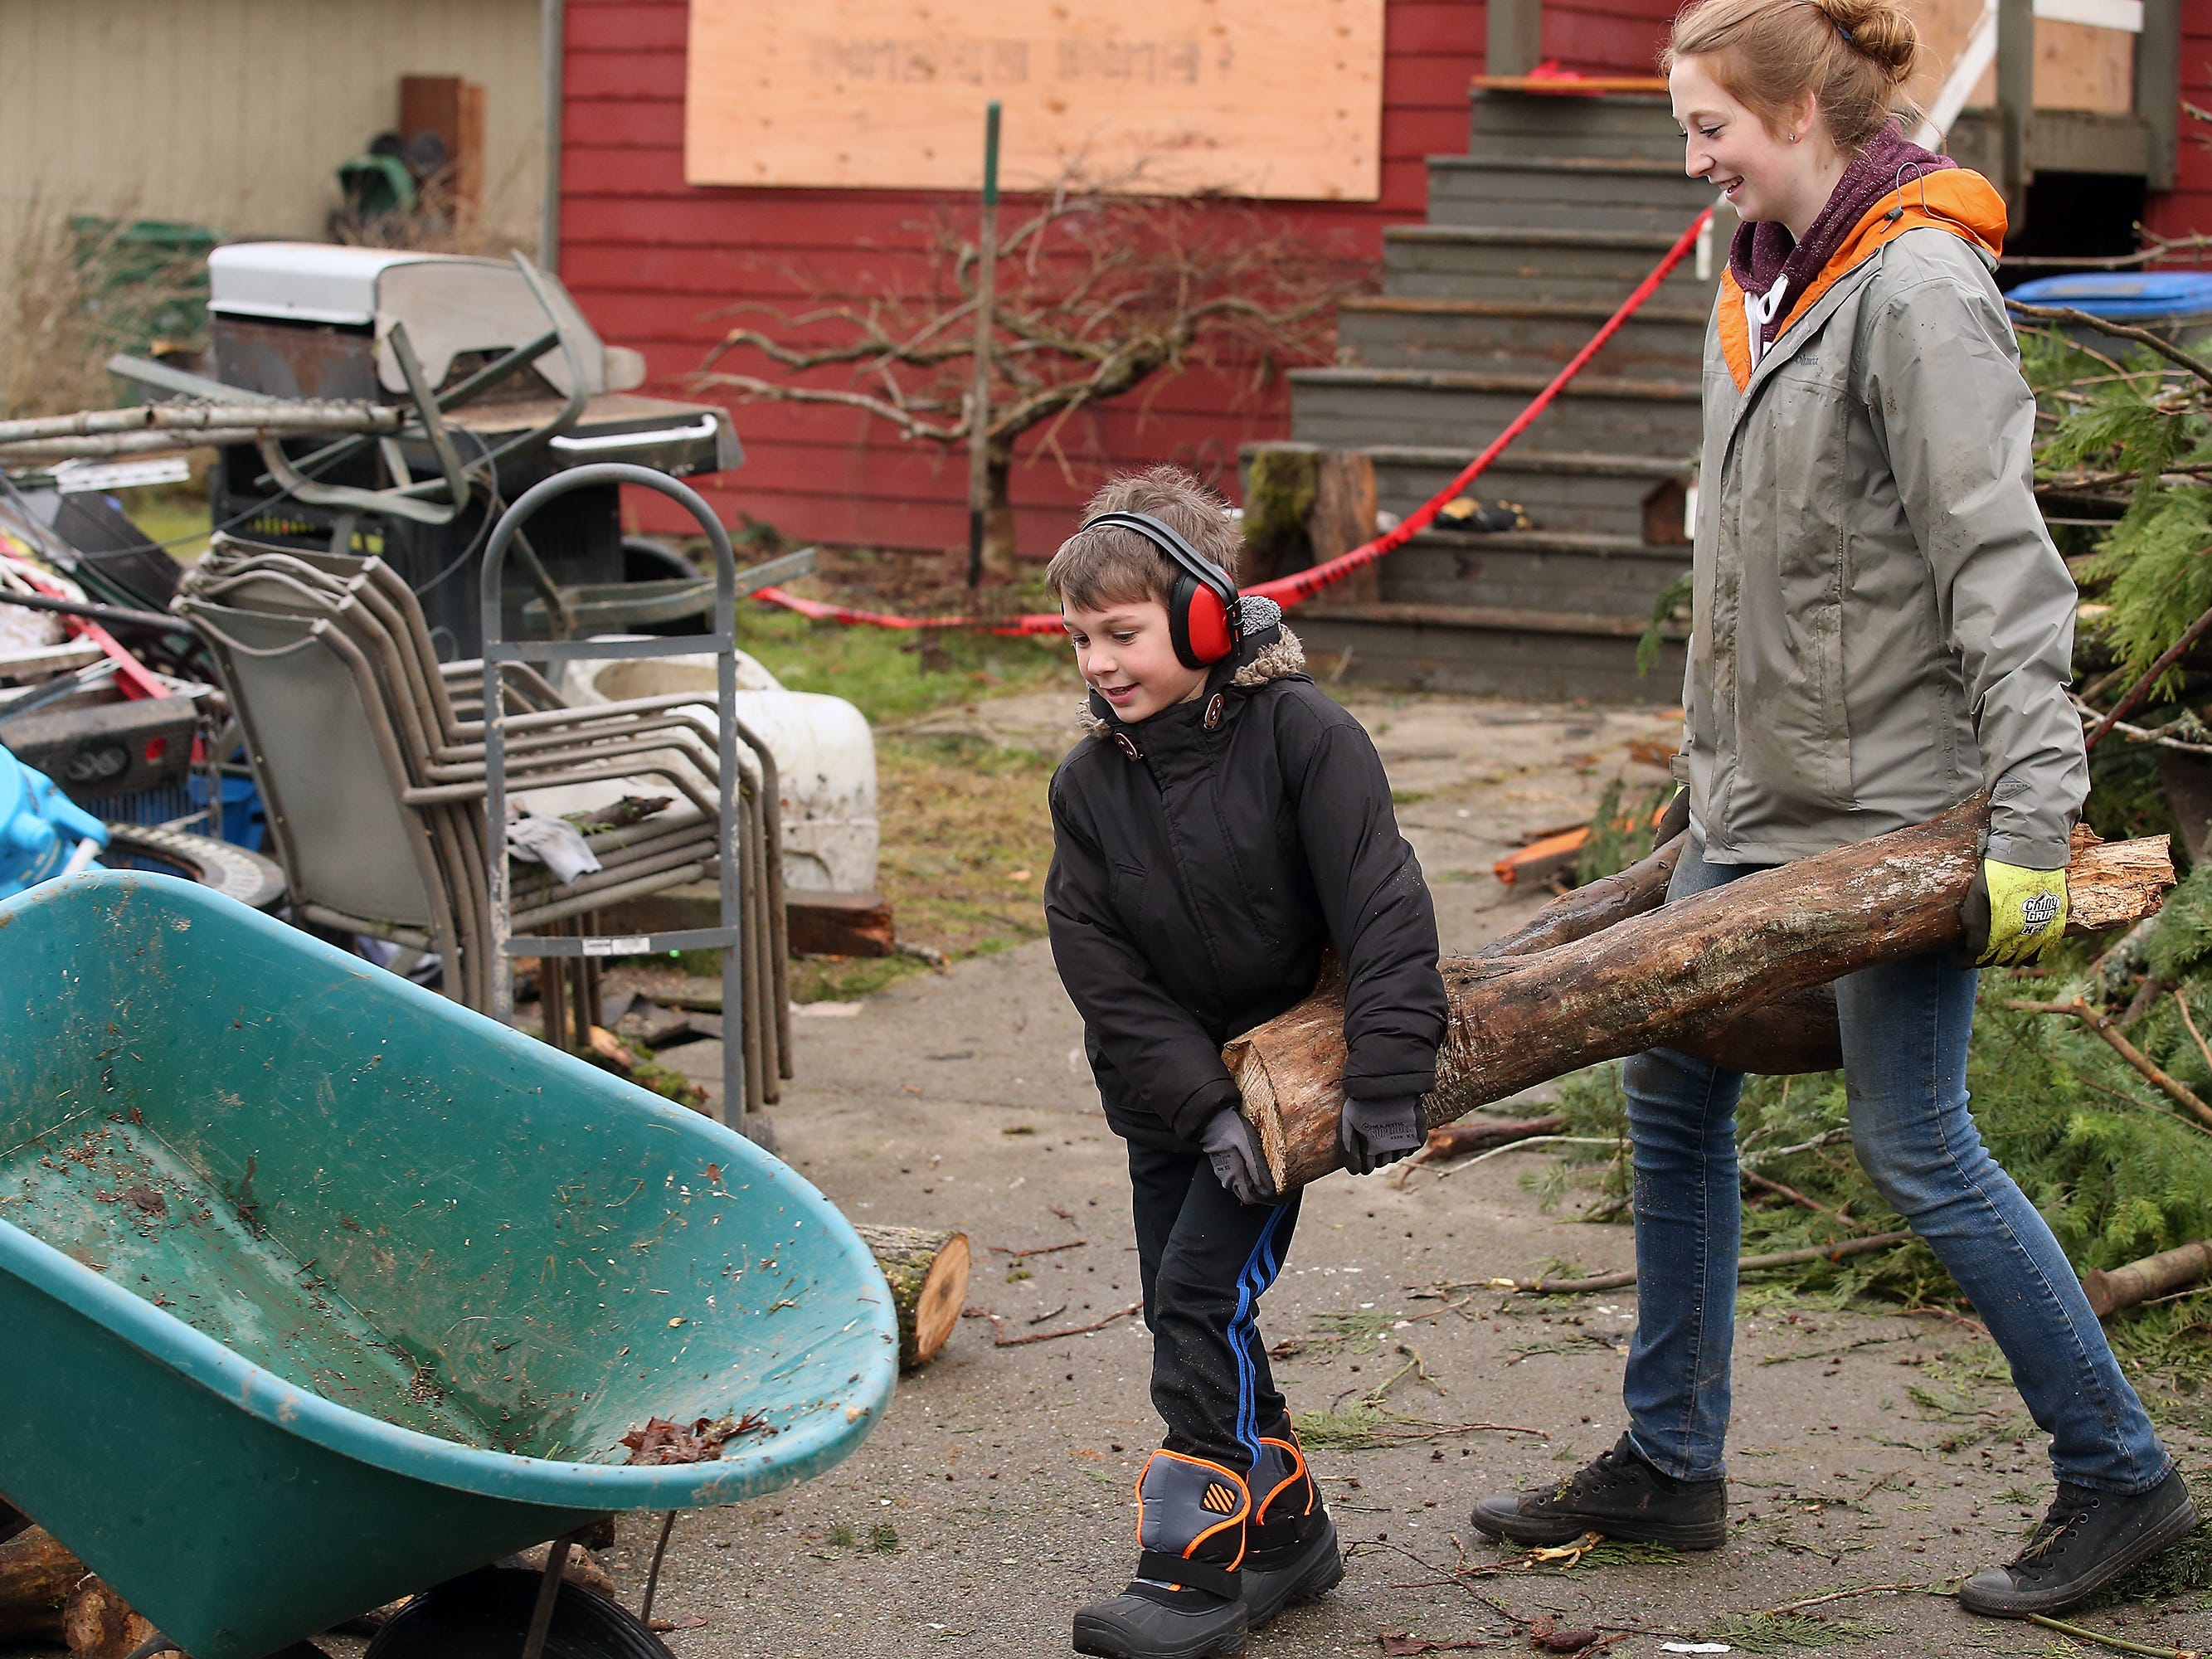 Casey Stone, 9, and Tori Lawrence work together to carry a large log to the Mueller's front yard as they help cleanup tornado debris on Tiburon Ct. in Port Orchard on Friday, December 21, 2018. Stone is a neighbor of the Muellers while Lawrence - who is from Arizona and is in the area visiting her boyfriend - bought some work gloves and just came to the neighborhood to help out.